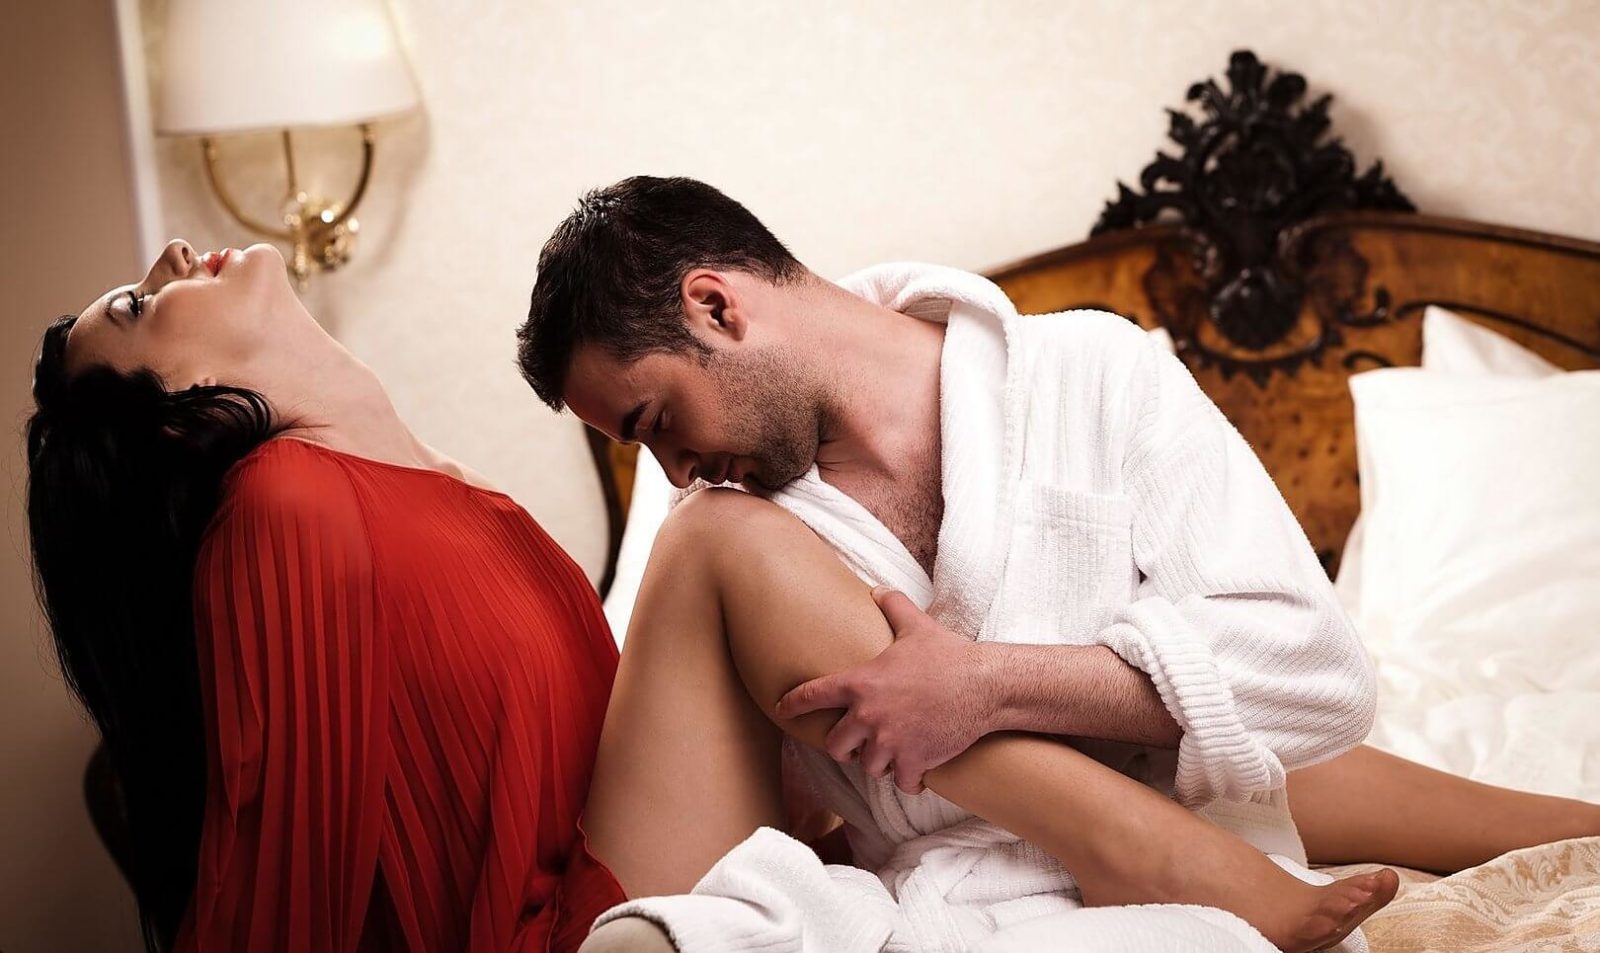 Foreplay And Oral Sex Is Actually Good For Your Health, Here's How